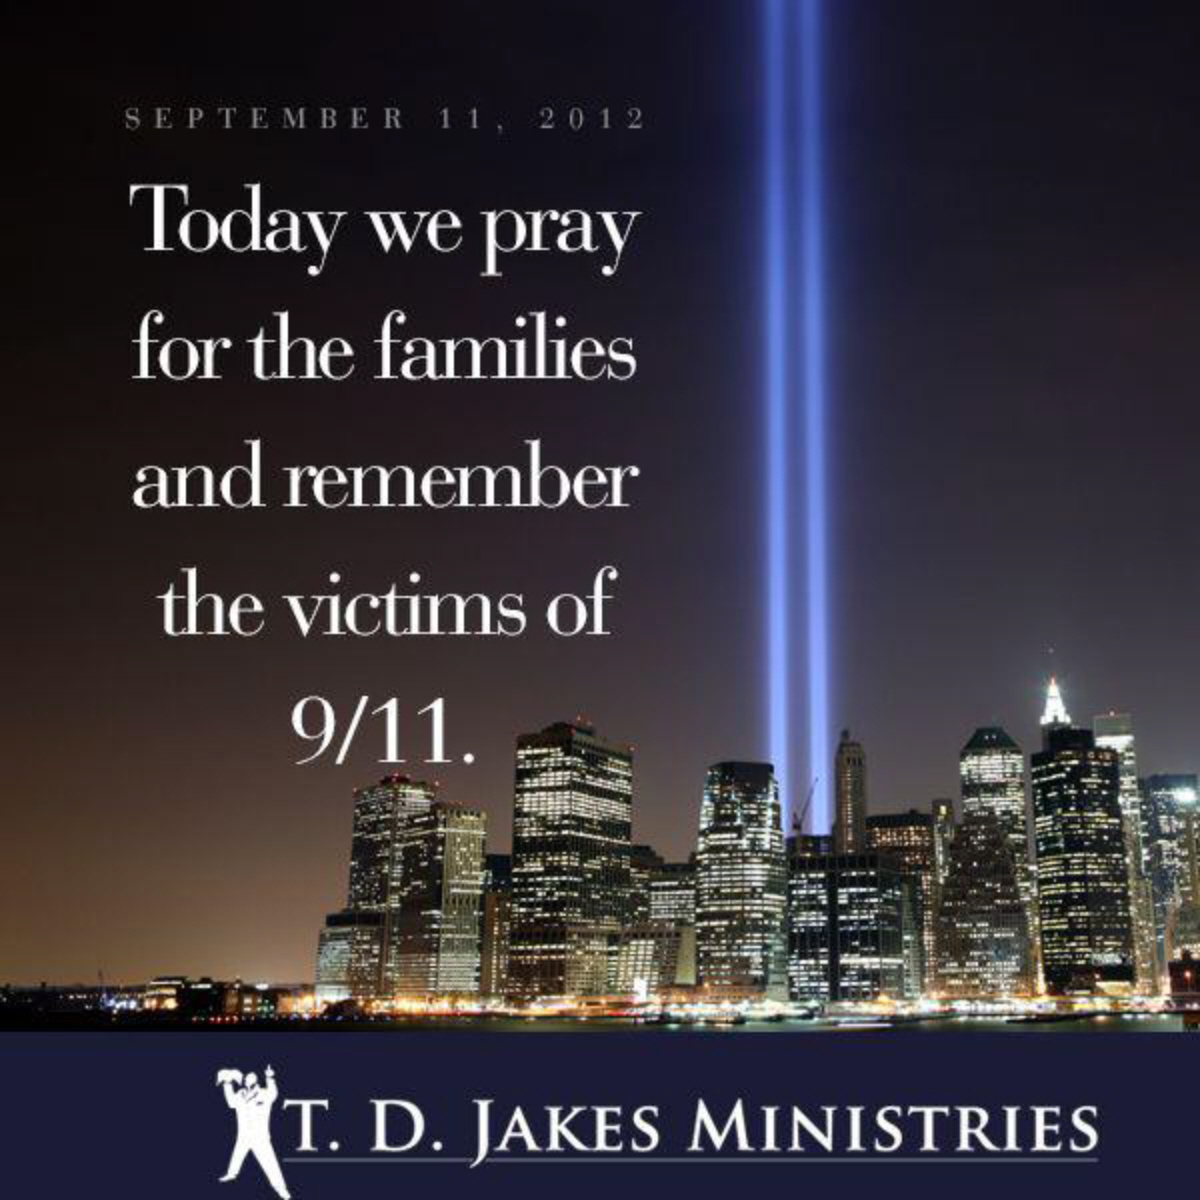 9 11 Never Forget Quotes Entrancing We Remember 911 On Patriot Day 2012Never Forget  September